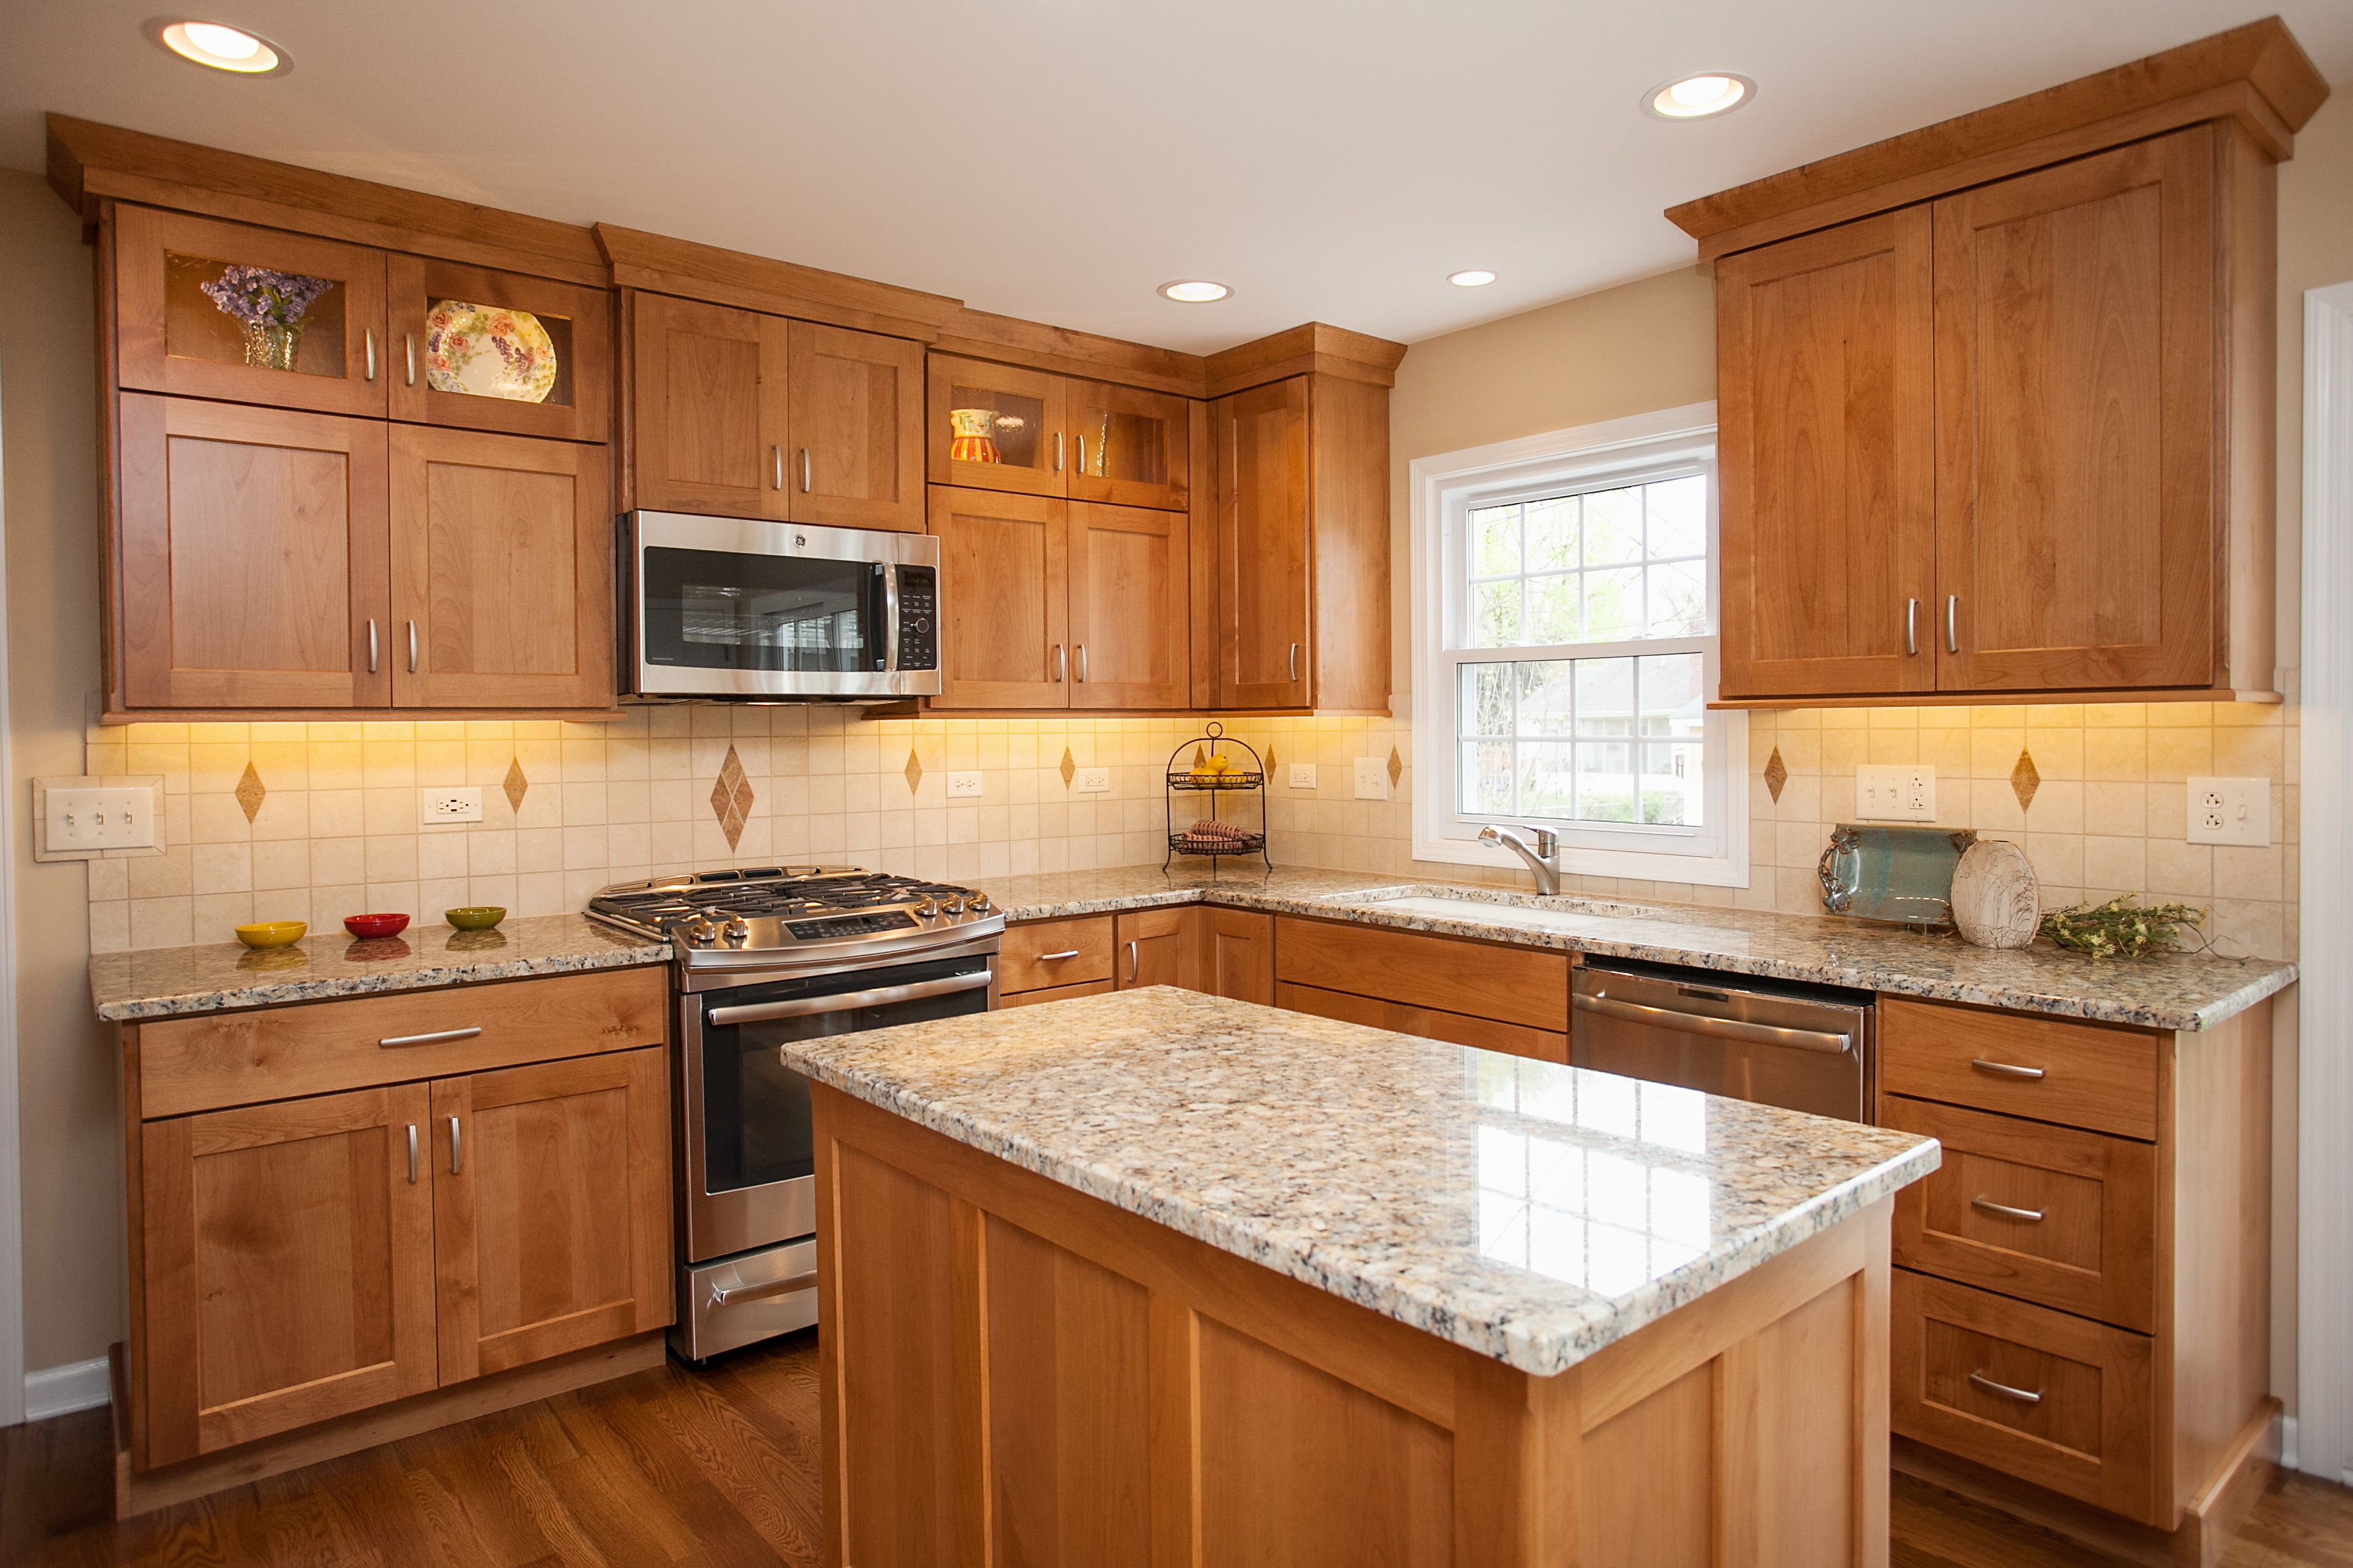 natural oak cabinets  Google Search  Interiors  Pinterest  Google search Kitchens and Alder